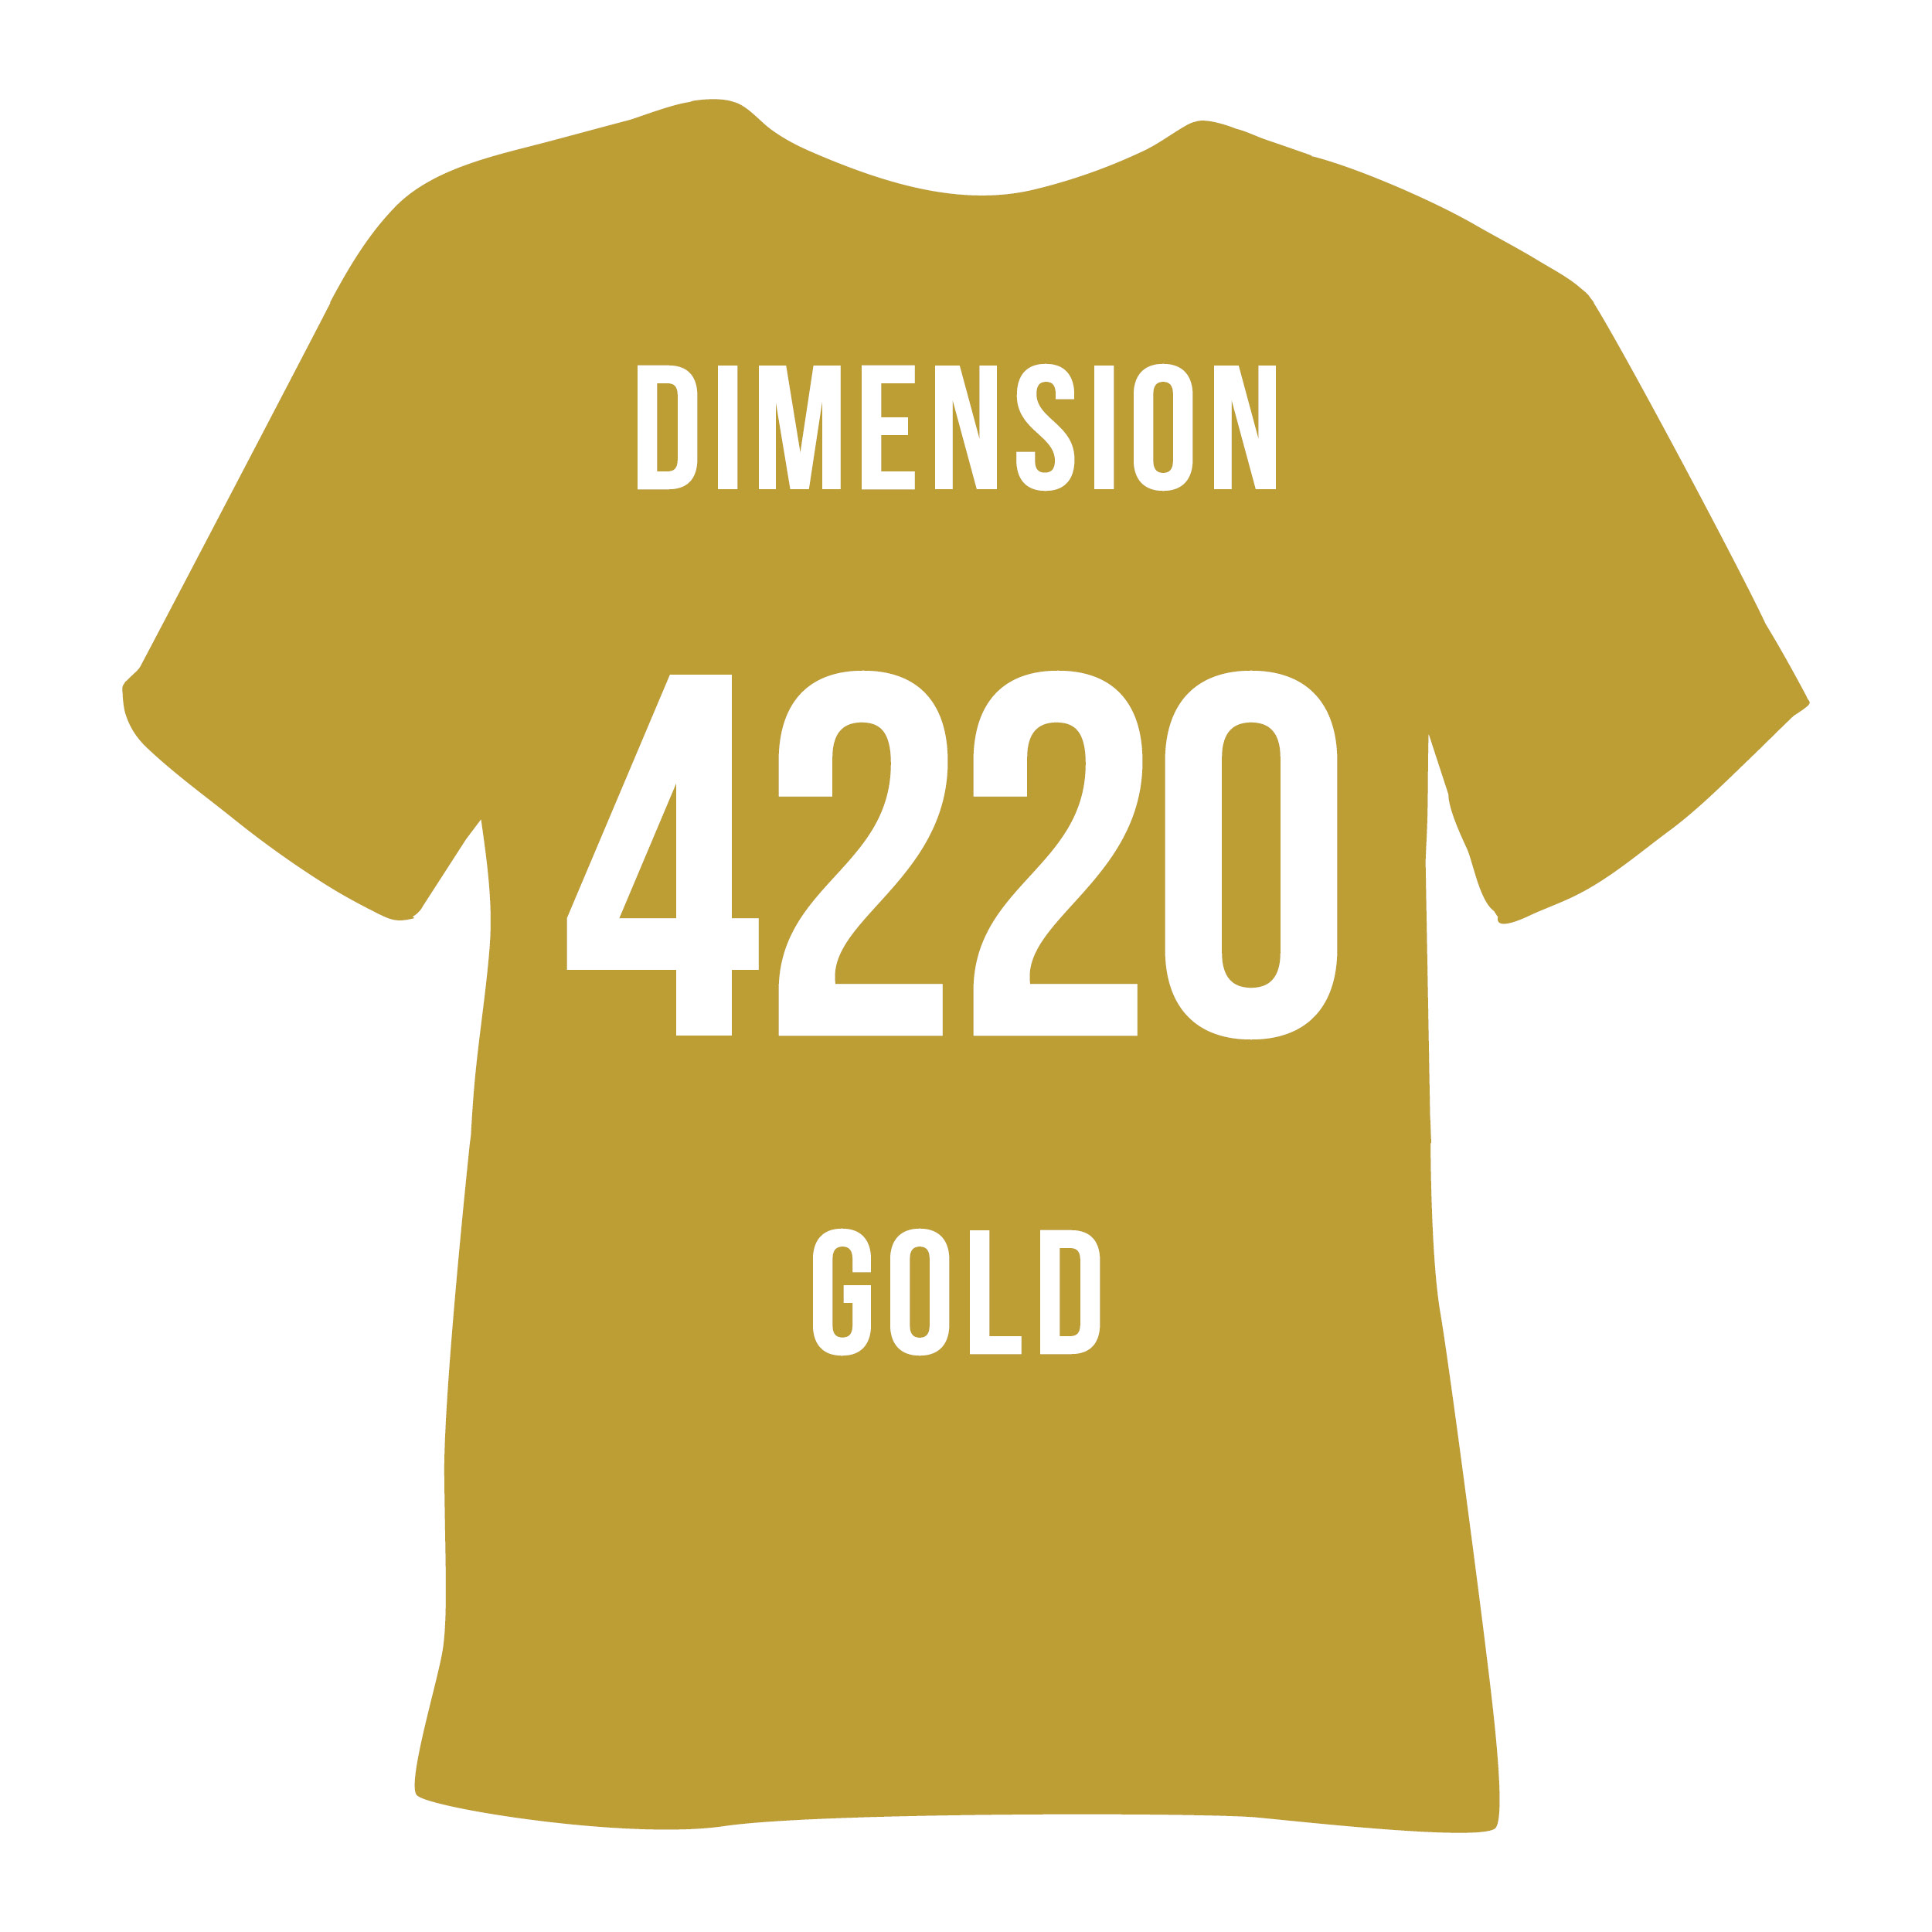 4220 DIMENSION GOLD